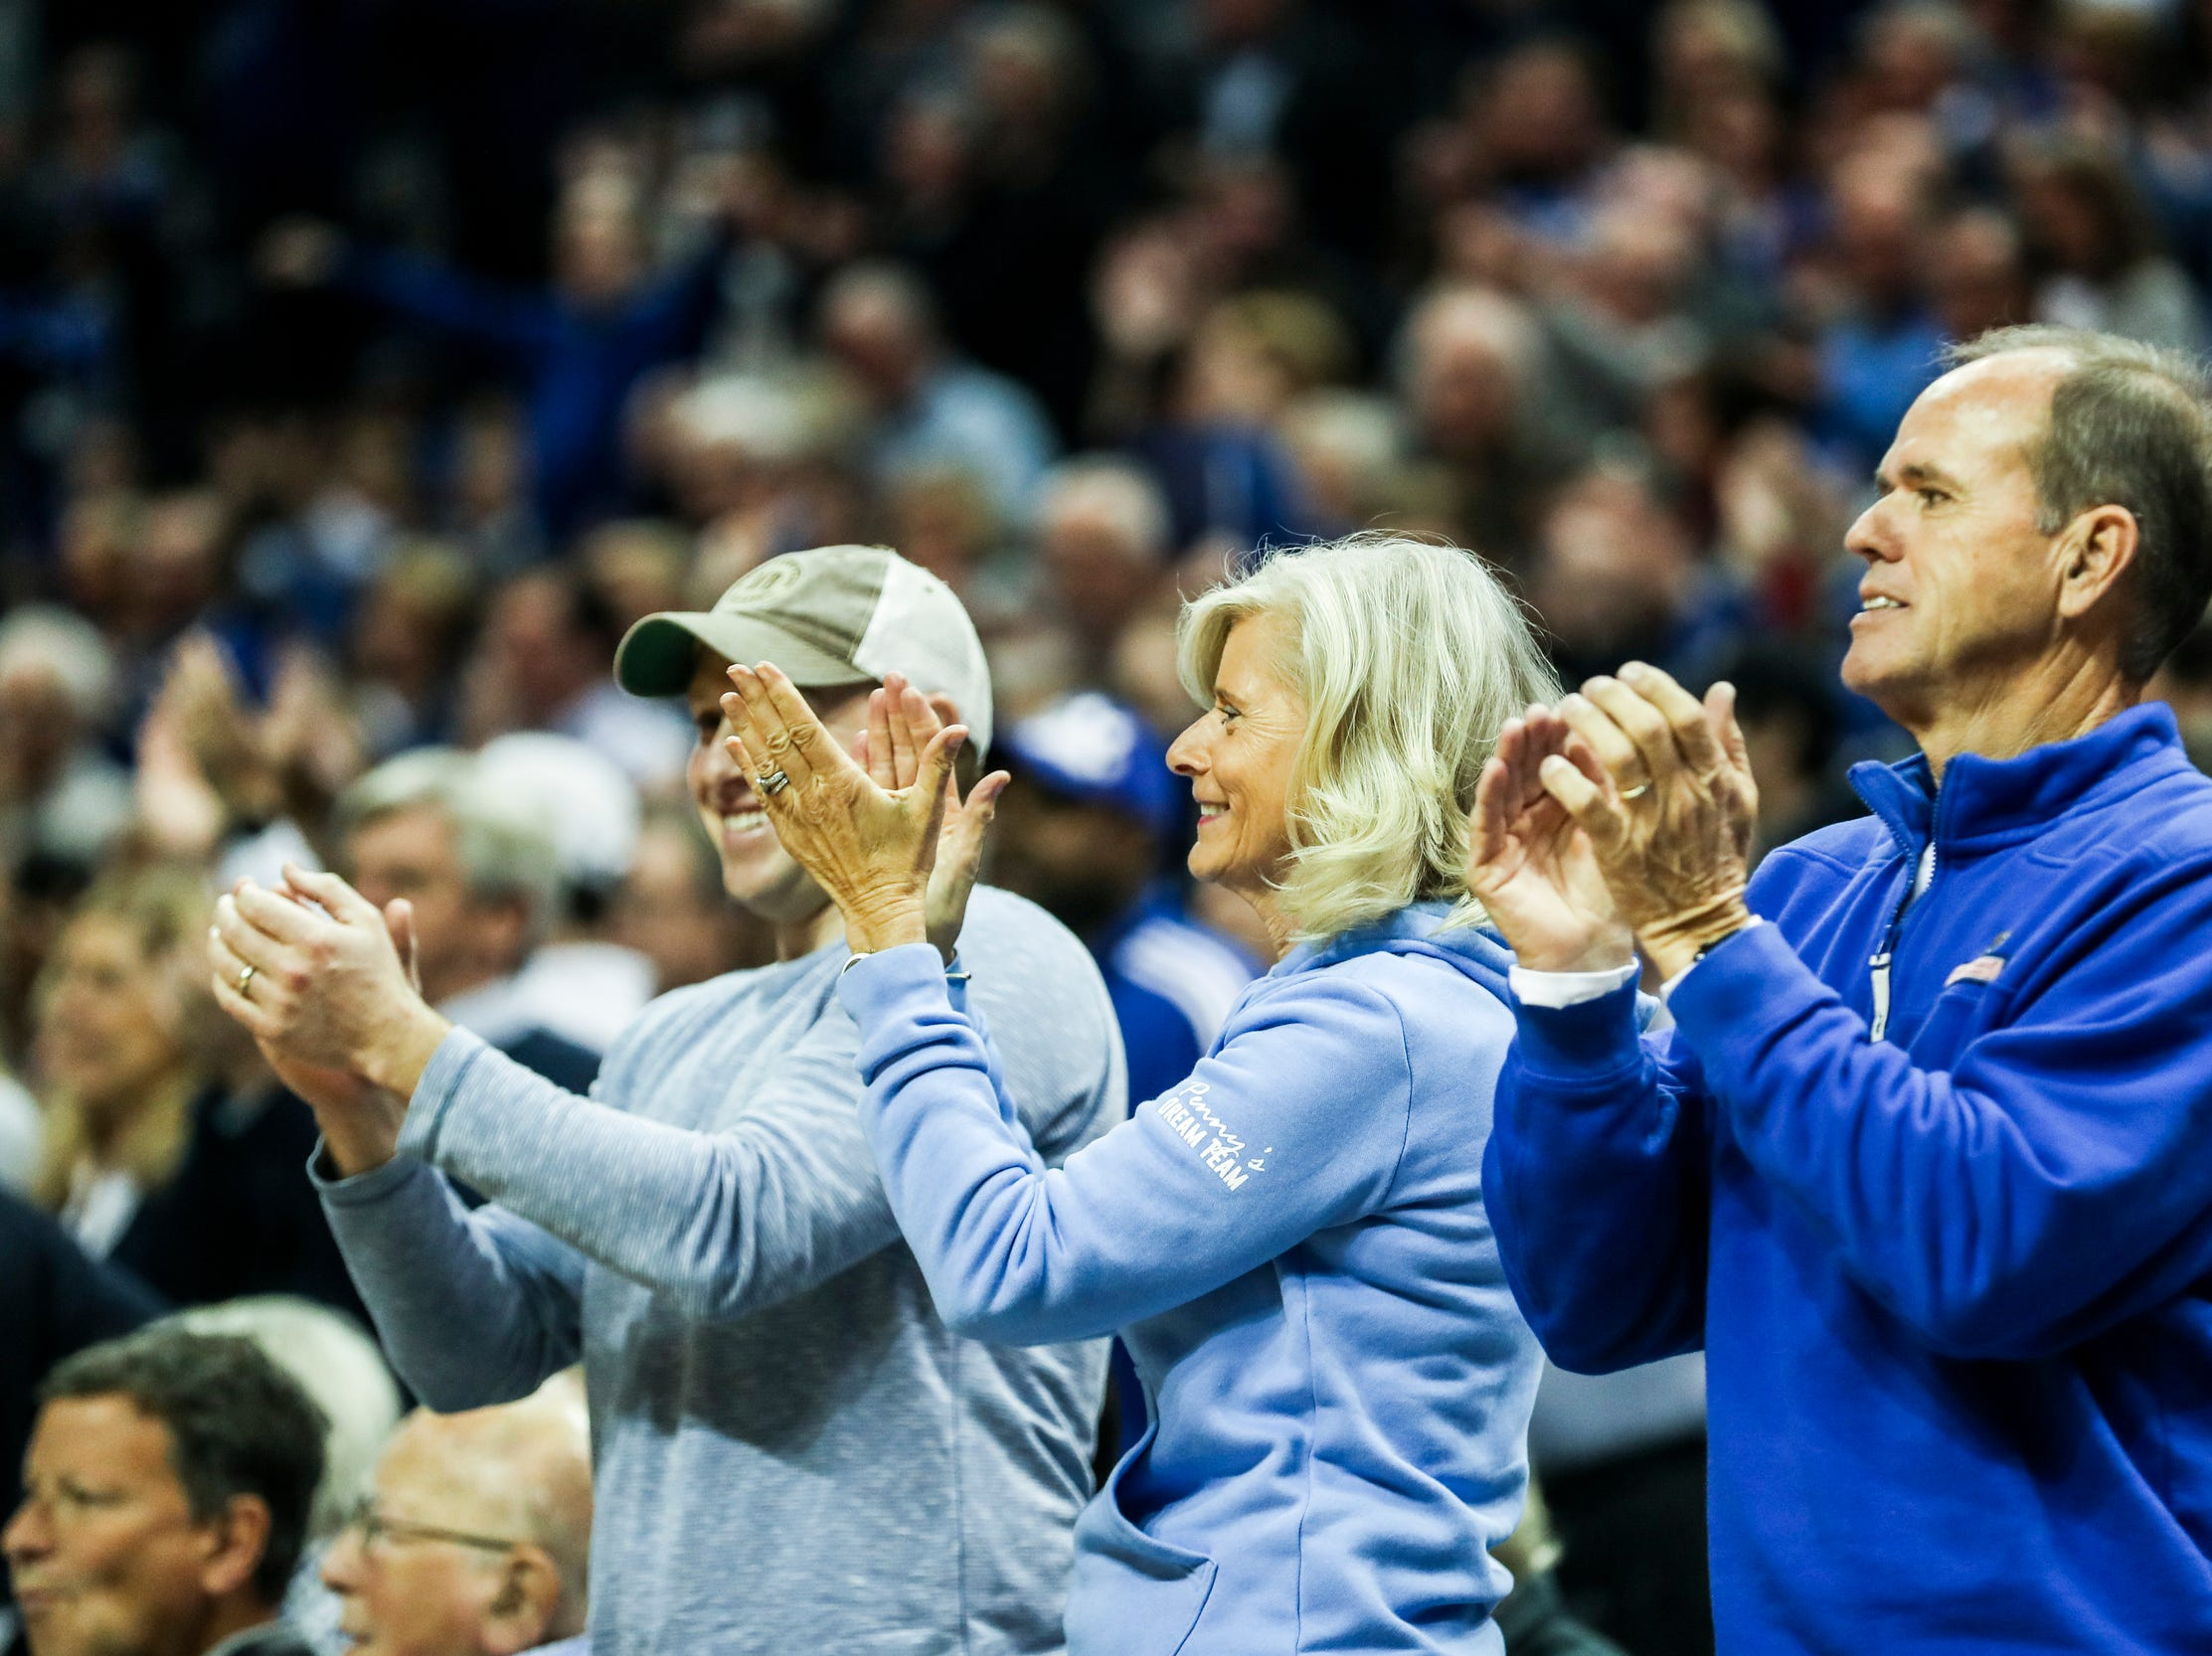 February 10, 2019 - Fans react during Sunday's game versus Connecticut at the FedExForum.